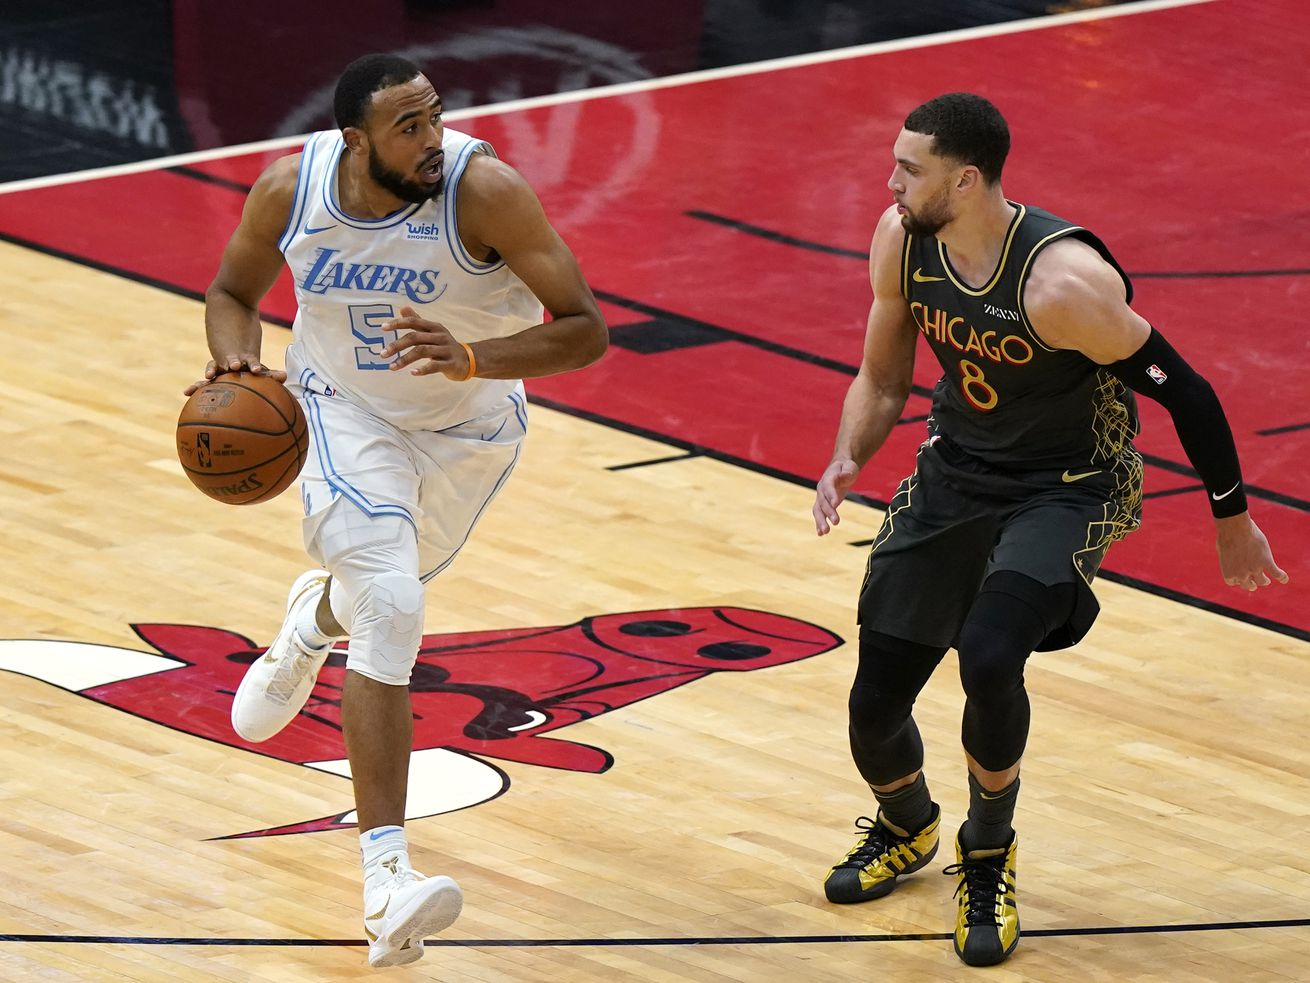 Los Angeles Lakers guard Talen Horton-Tucker, left, is defended by Chicago Bulls guard Zach LaVine during the second half of an NBA basketball game in Chicago.